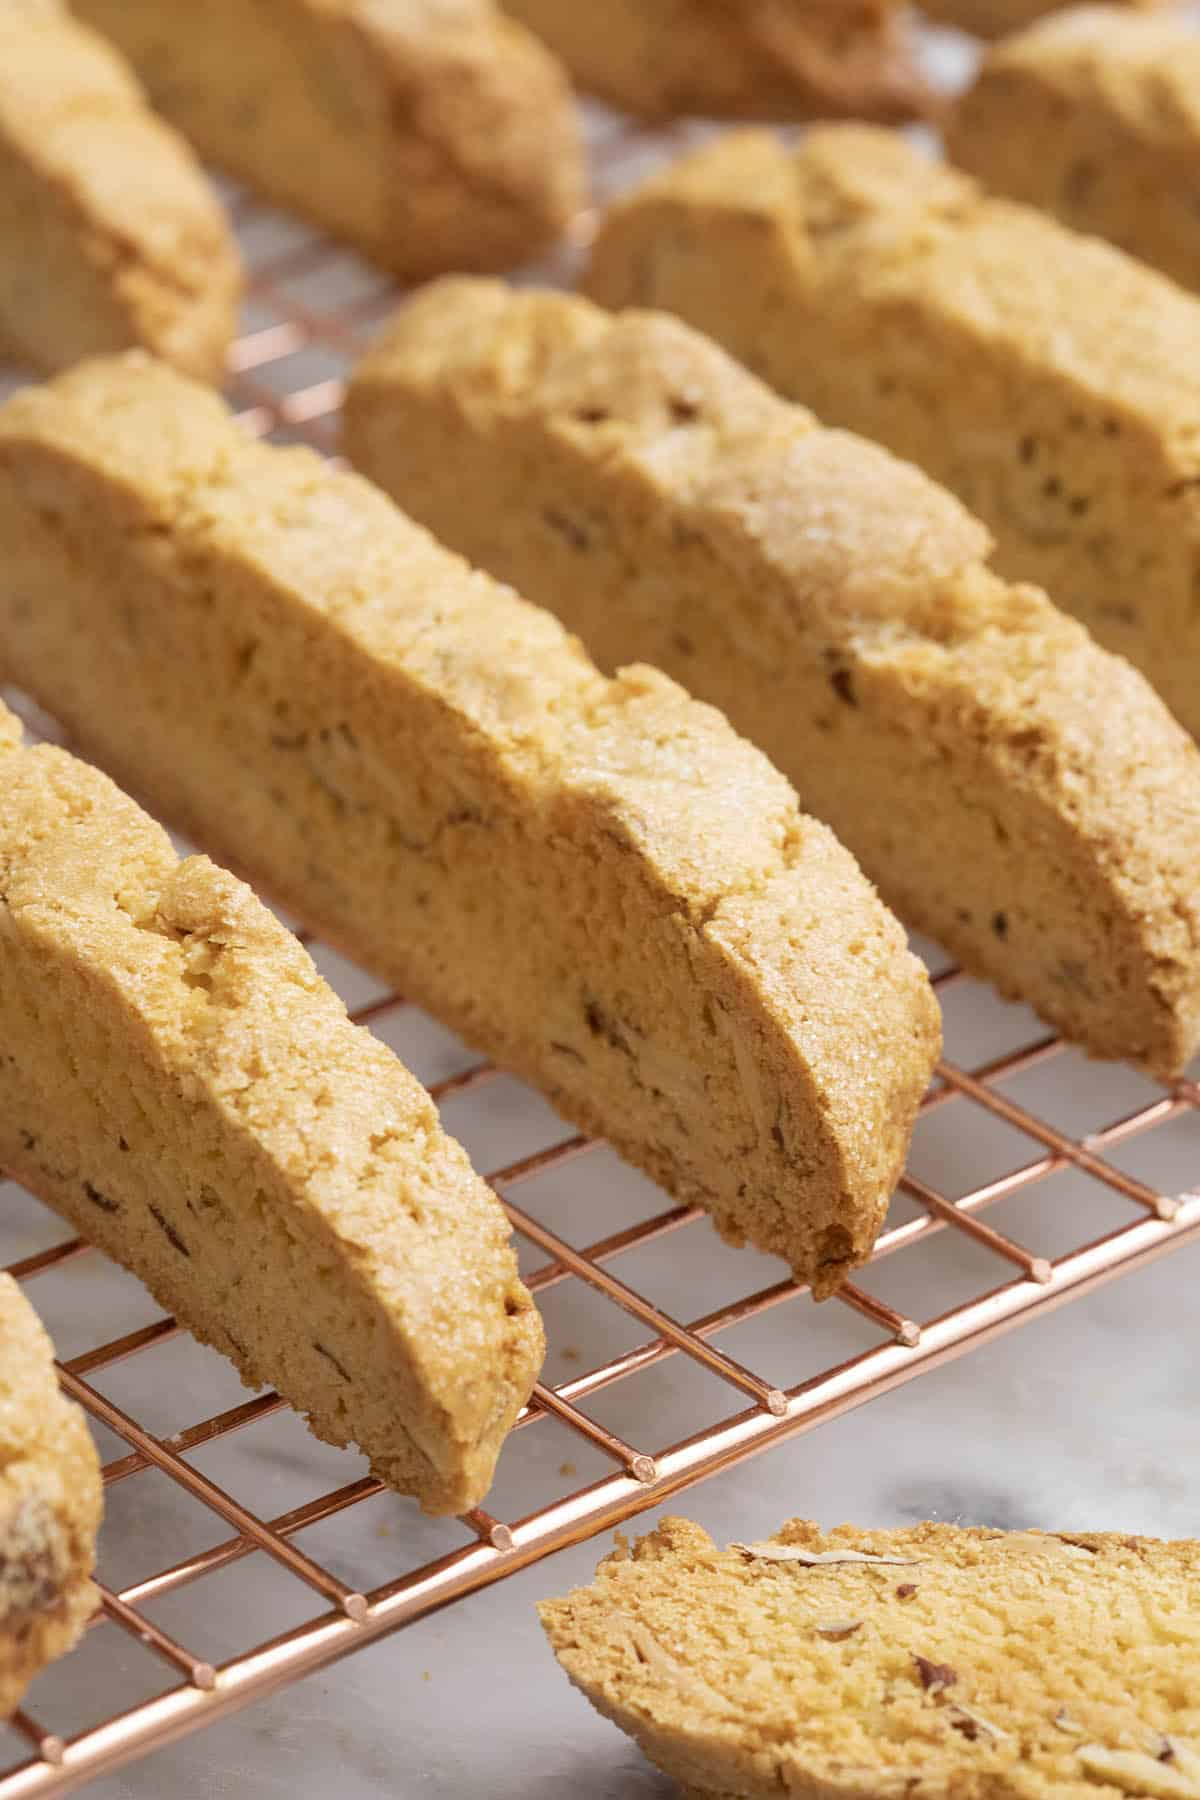 Freshly baked biscotti lined up on a copper cooling rack.